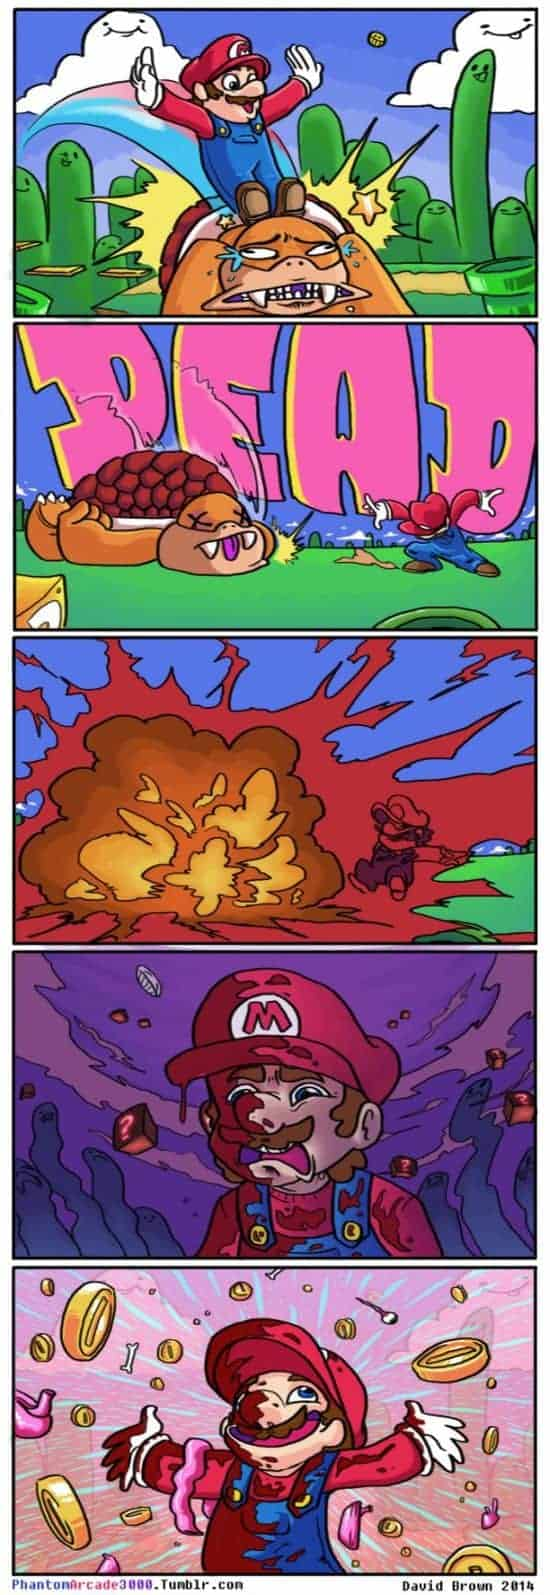 The brutal reality when Super Mario jumps on Koopa Kids